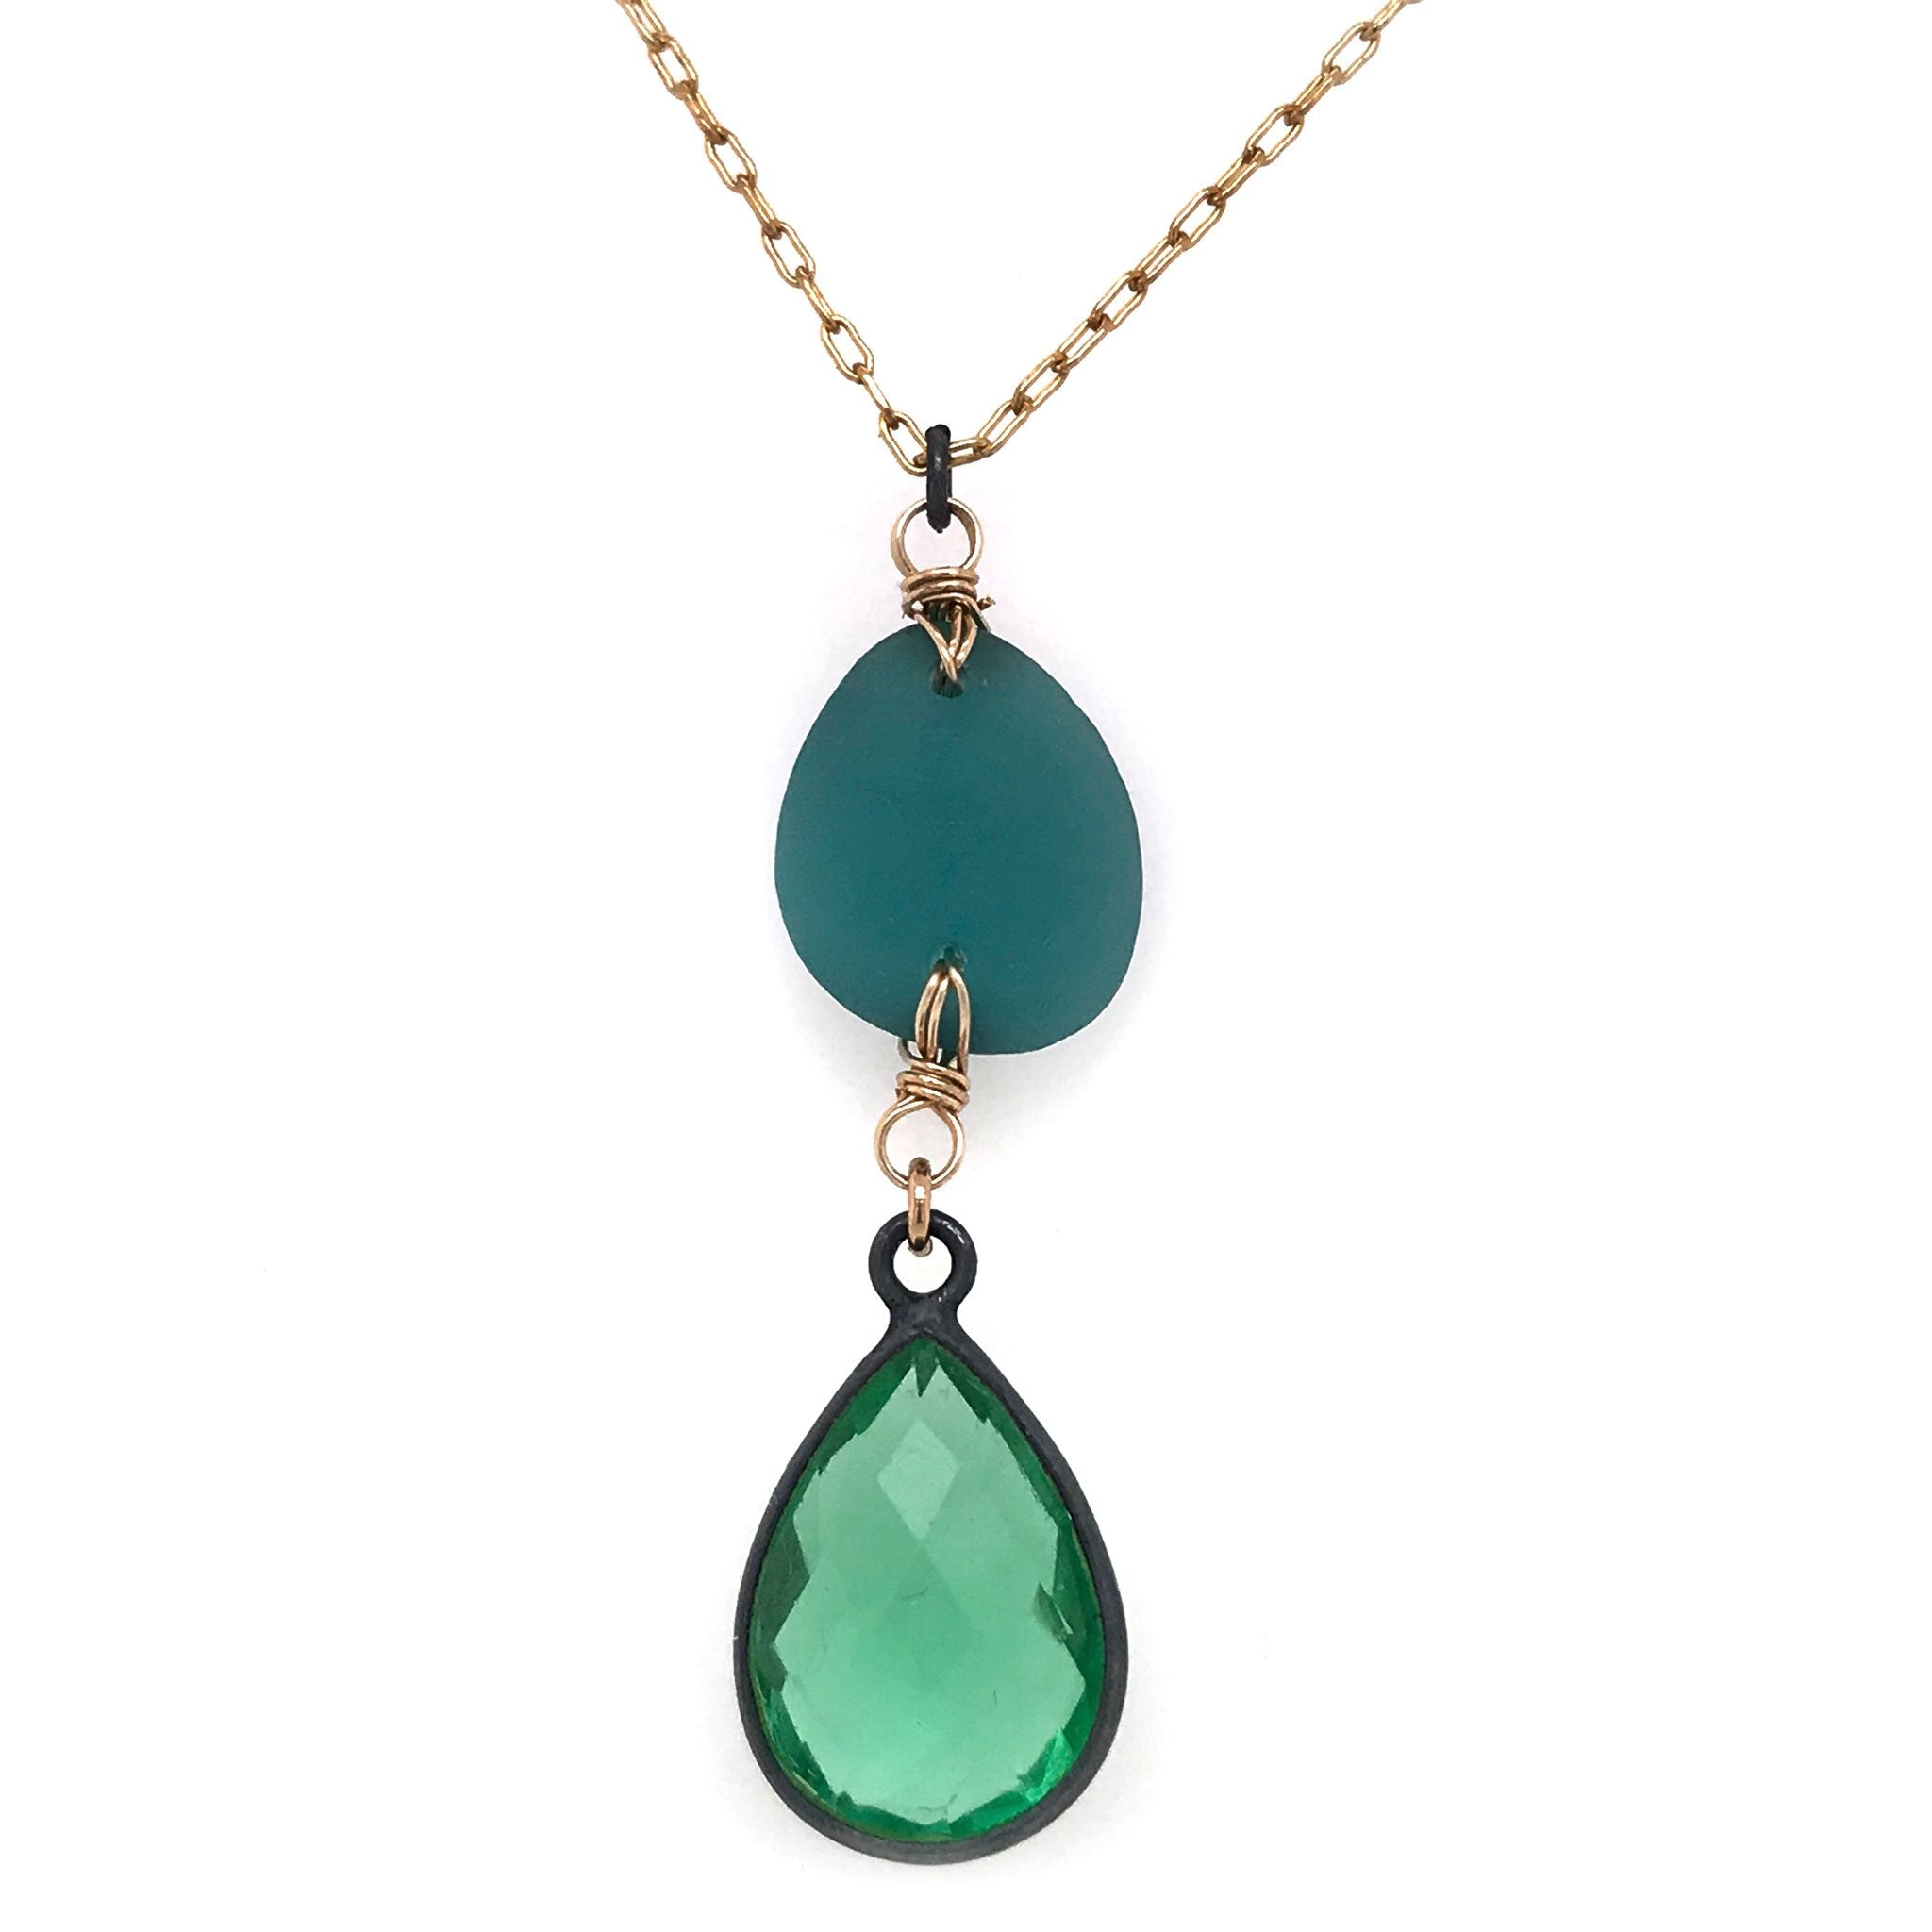 teal seaglass necklace with green quartz kriket Broadhurst jewellery